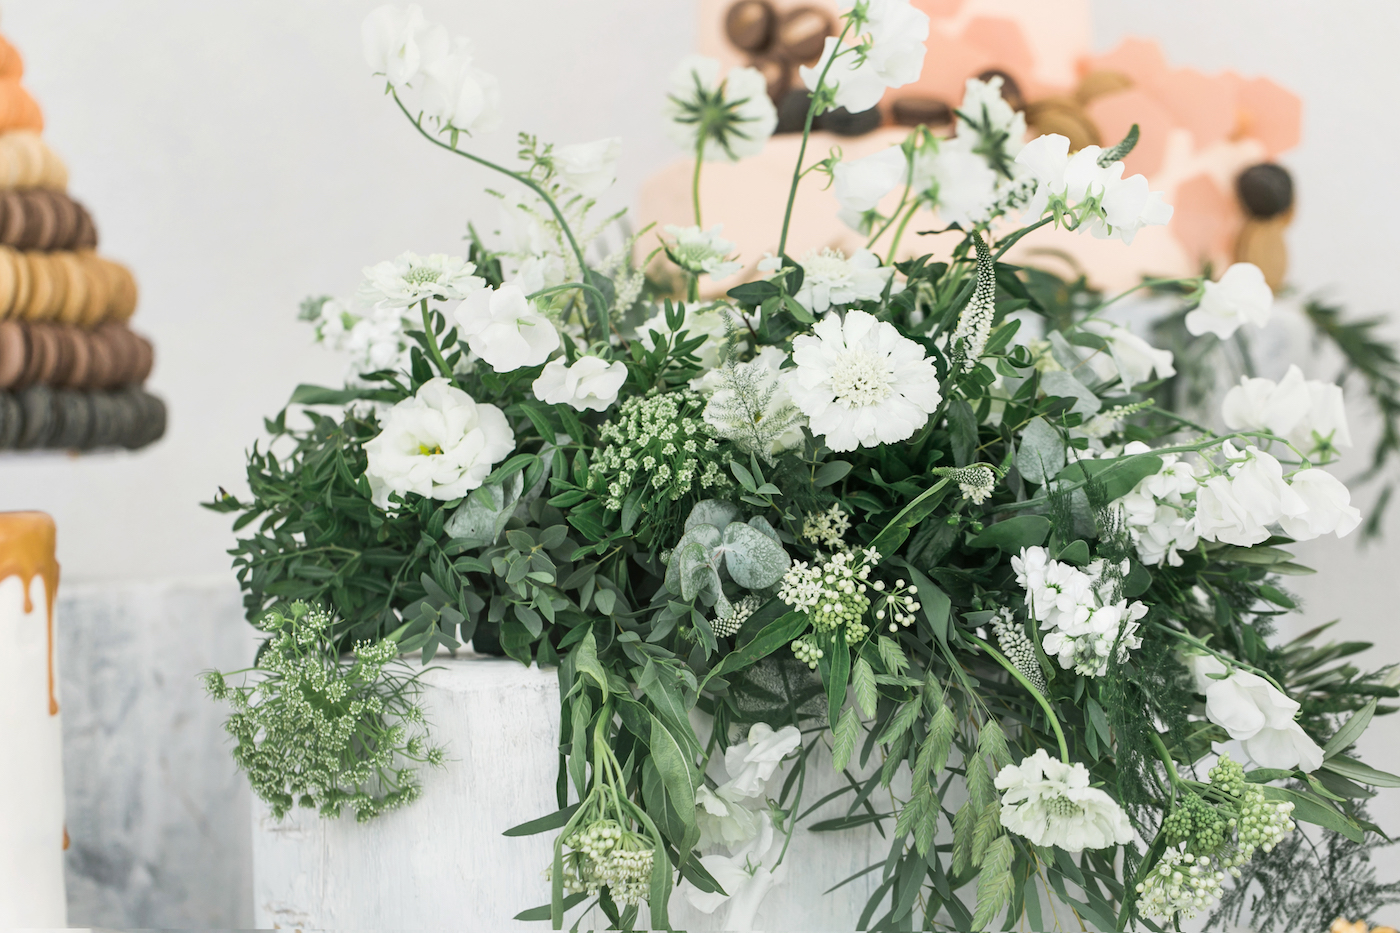 White flower arrangements